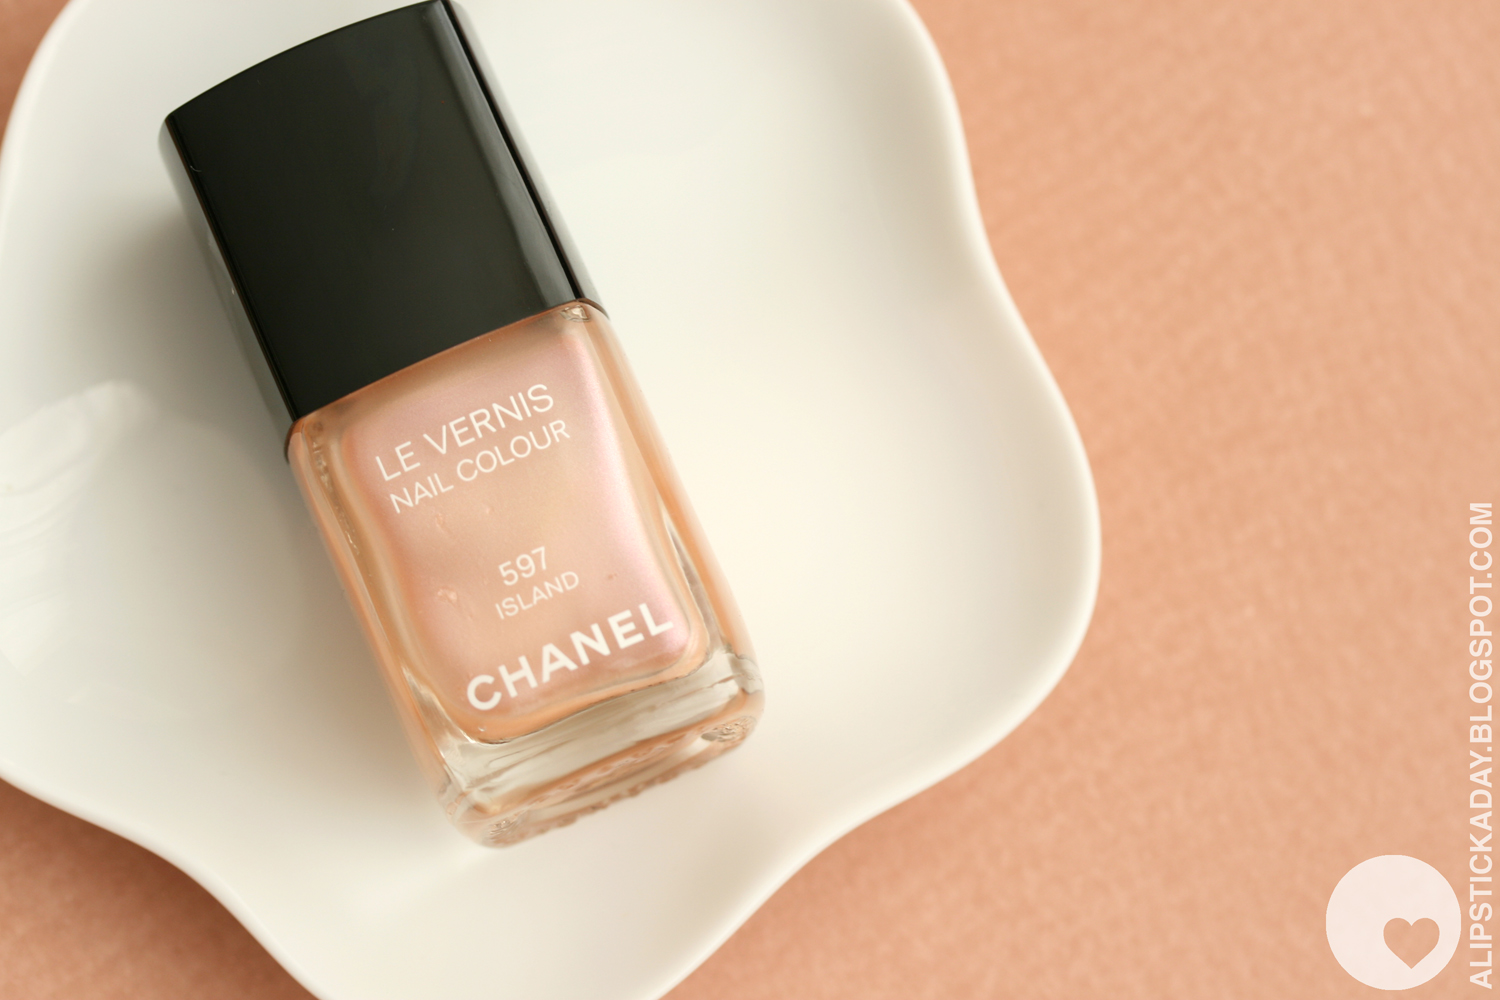 The Beauty Look Book: Chanel Island, Delight and Holiday